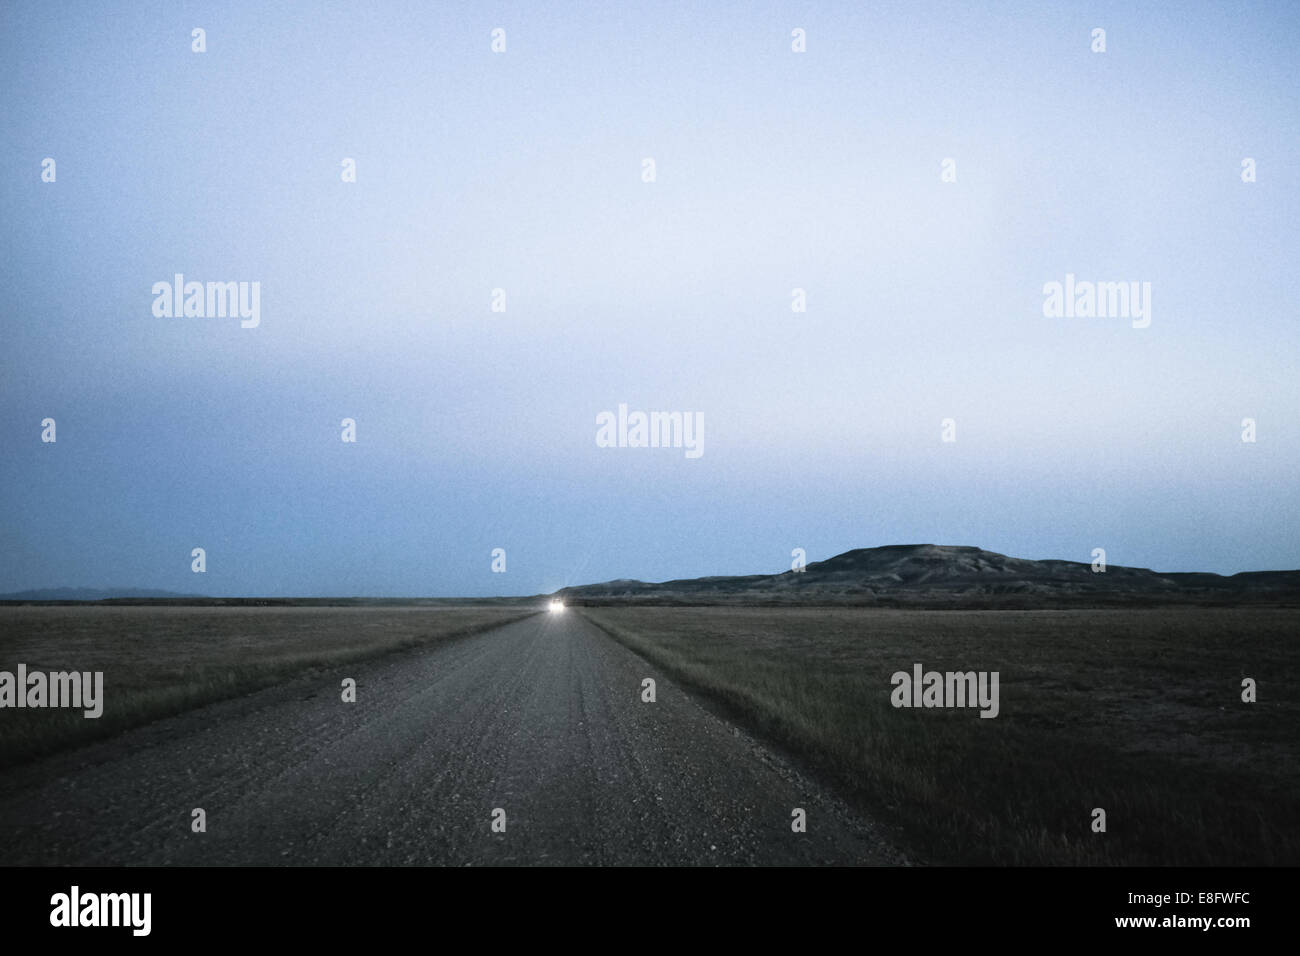 USA, Wyoming,Dirt road at dusk - Stock Image